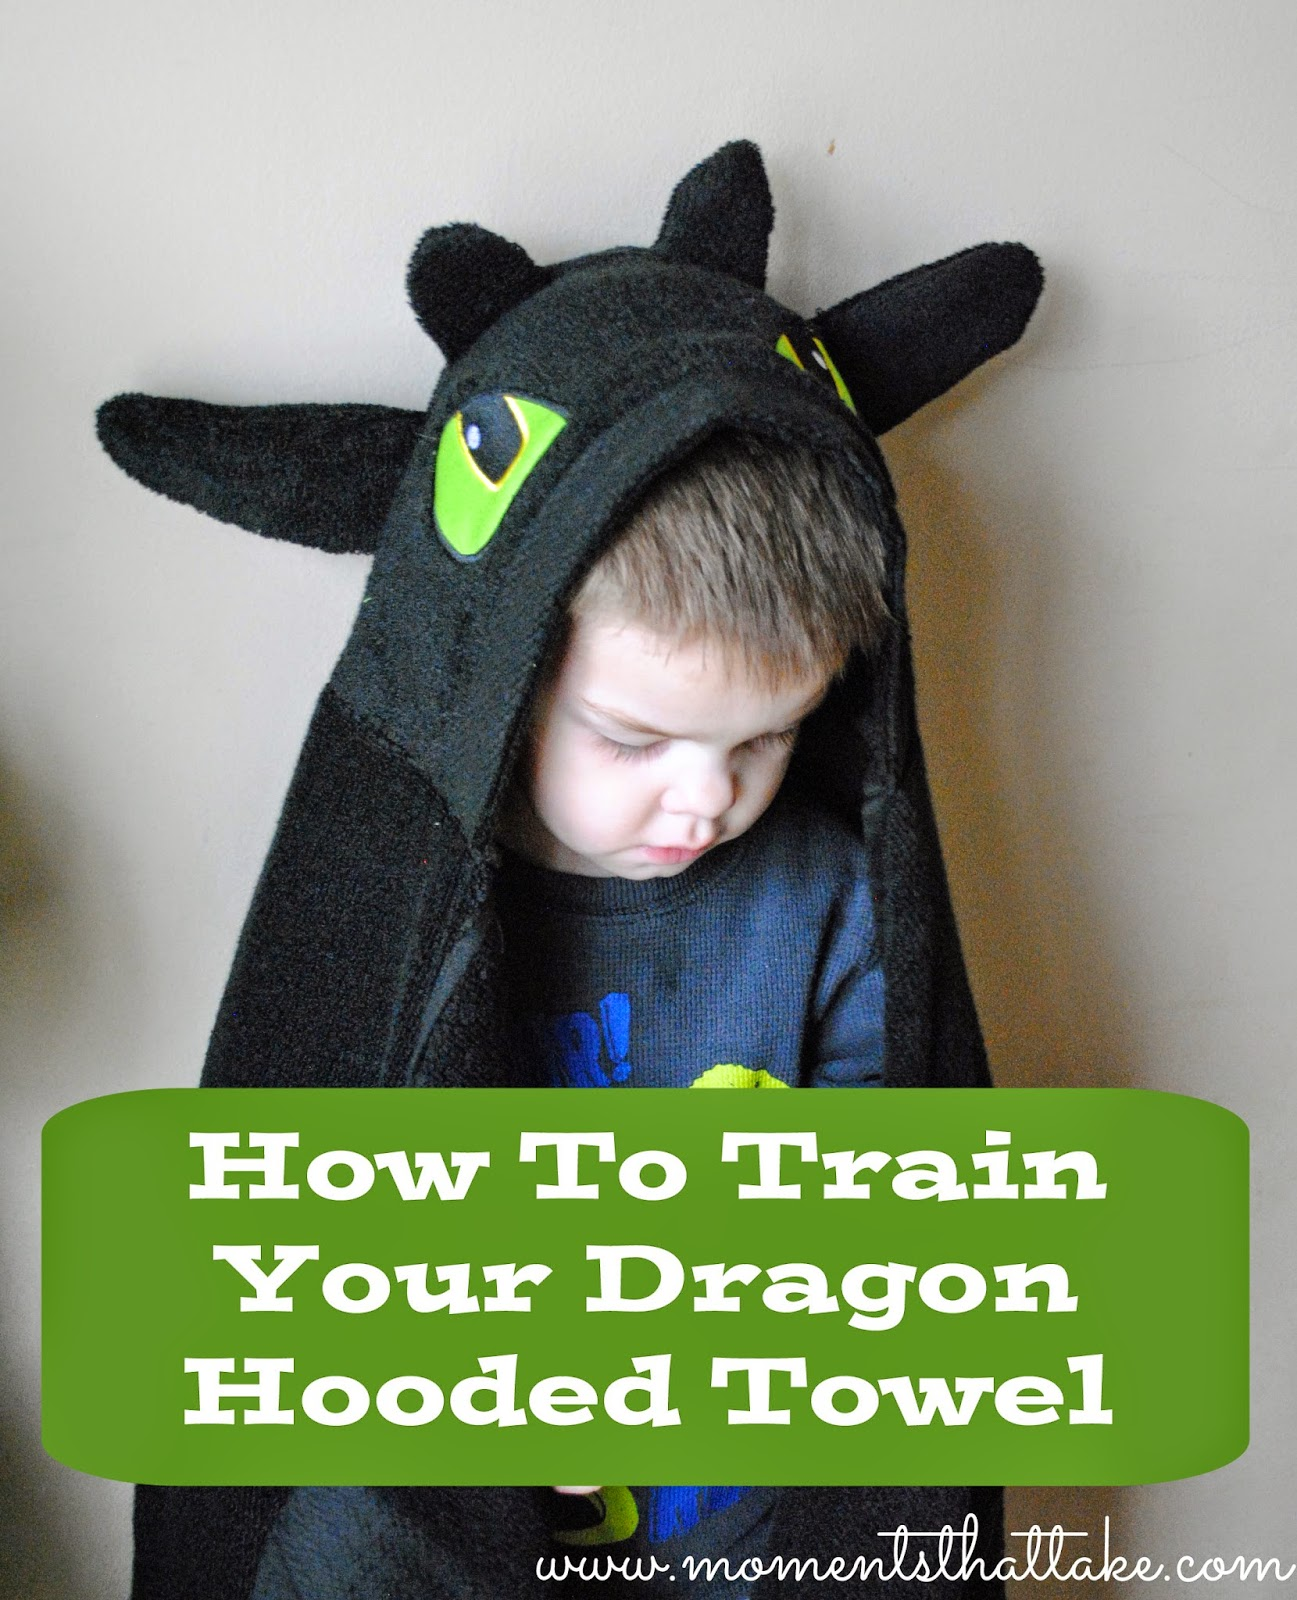 How To Train Your Dragon Hooded Towel